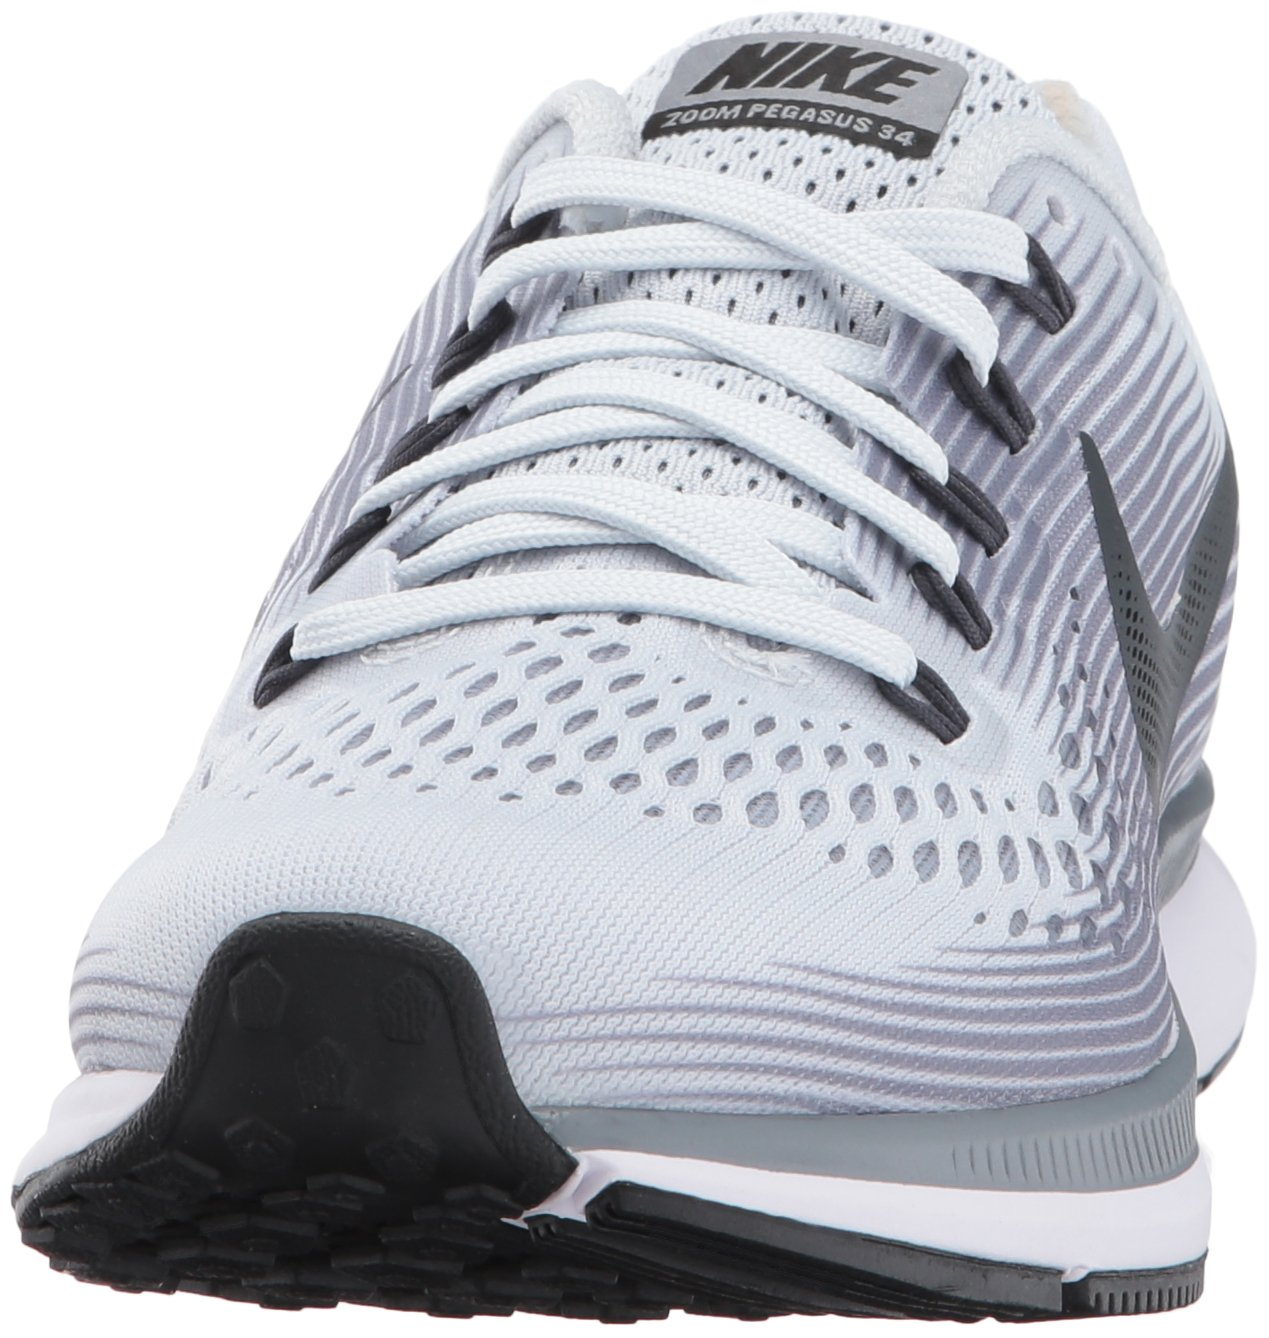 Nike Women's Air Zoom Pegasus 34 Running Shoes-Pure Plantinum/Antracite-6 by Nike (Image #4)